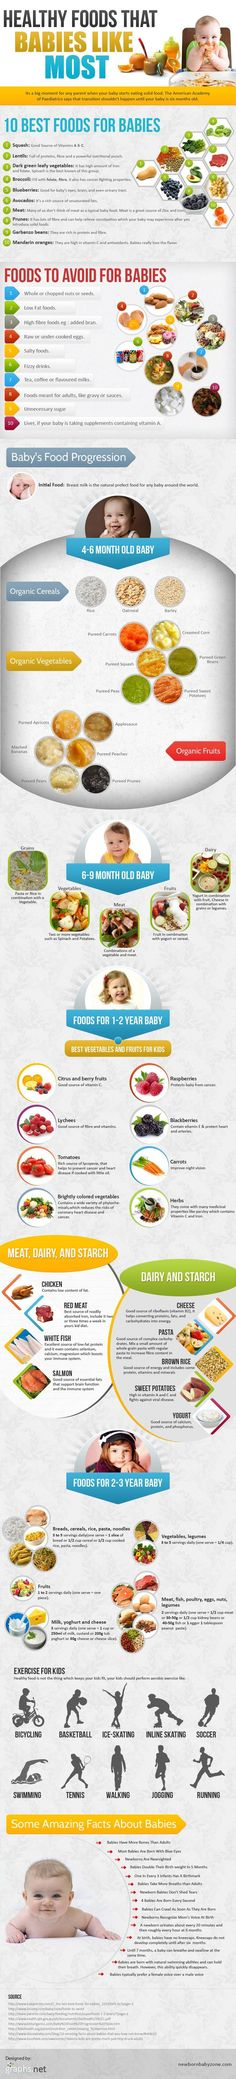 What-Babies-Can-Eat-Ages-Newborn-to-3-Years photo